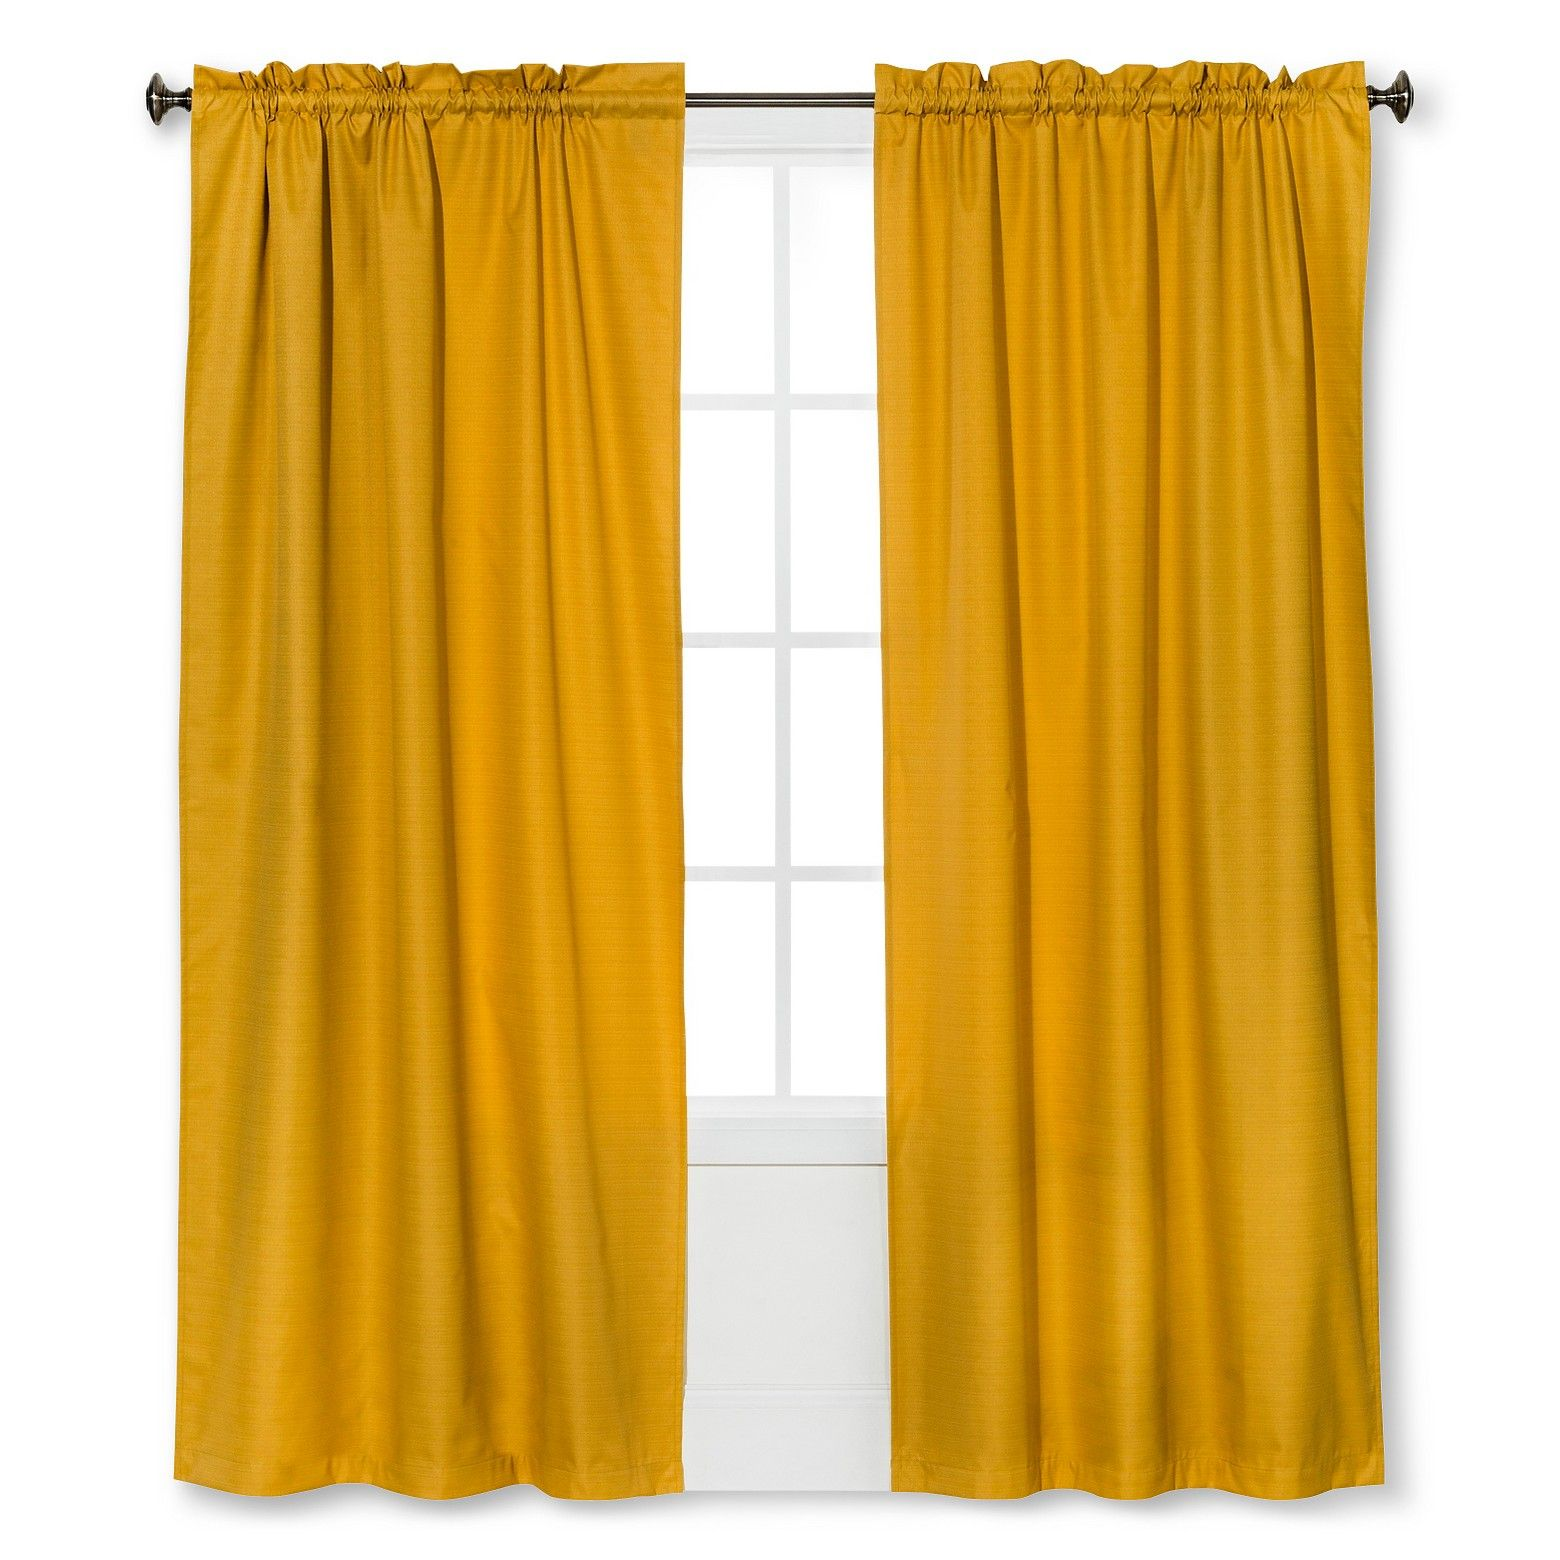 The Eclipse Braxton Thermaback Window Panels drape beautifully and ...